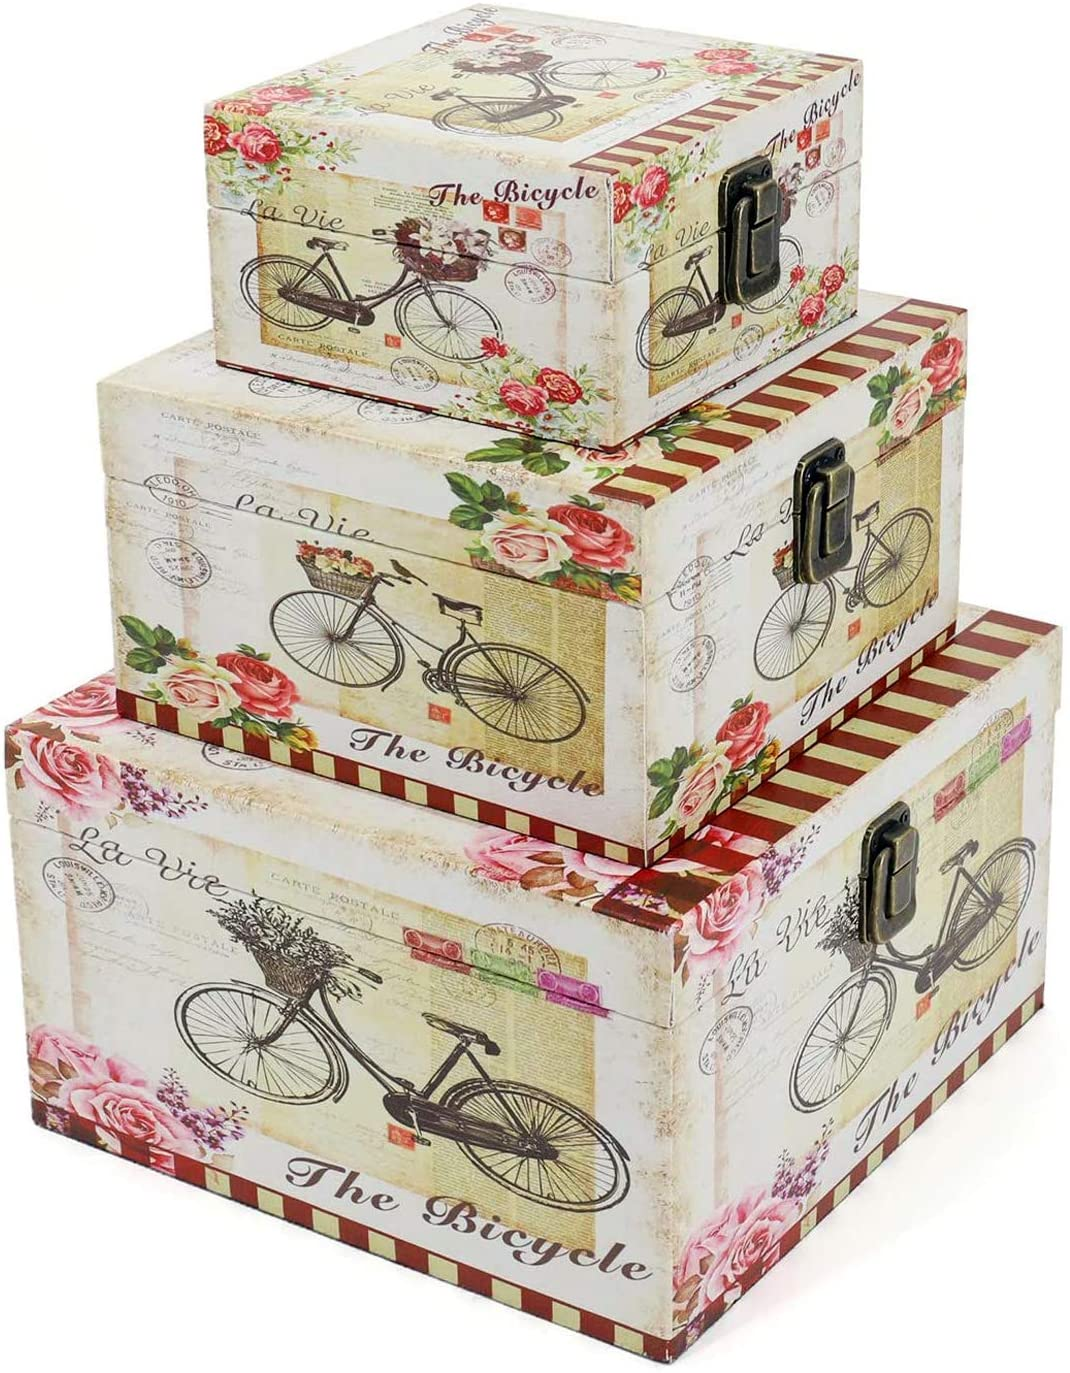 Jolitac Wood Storage Box Set of 3, Vintage Decorative Nesting Boxes Wooden Treasure Storage Crates With Latch Rustic Antique Box Set, Home Decor Boxes With Lid for Keep Photos, Jewelry, Cash (Bike)